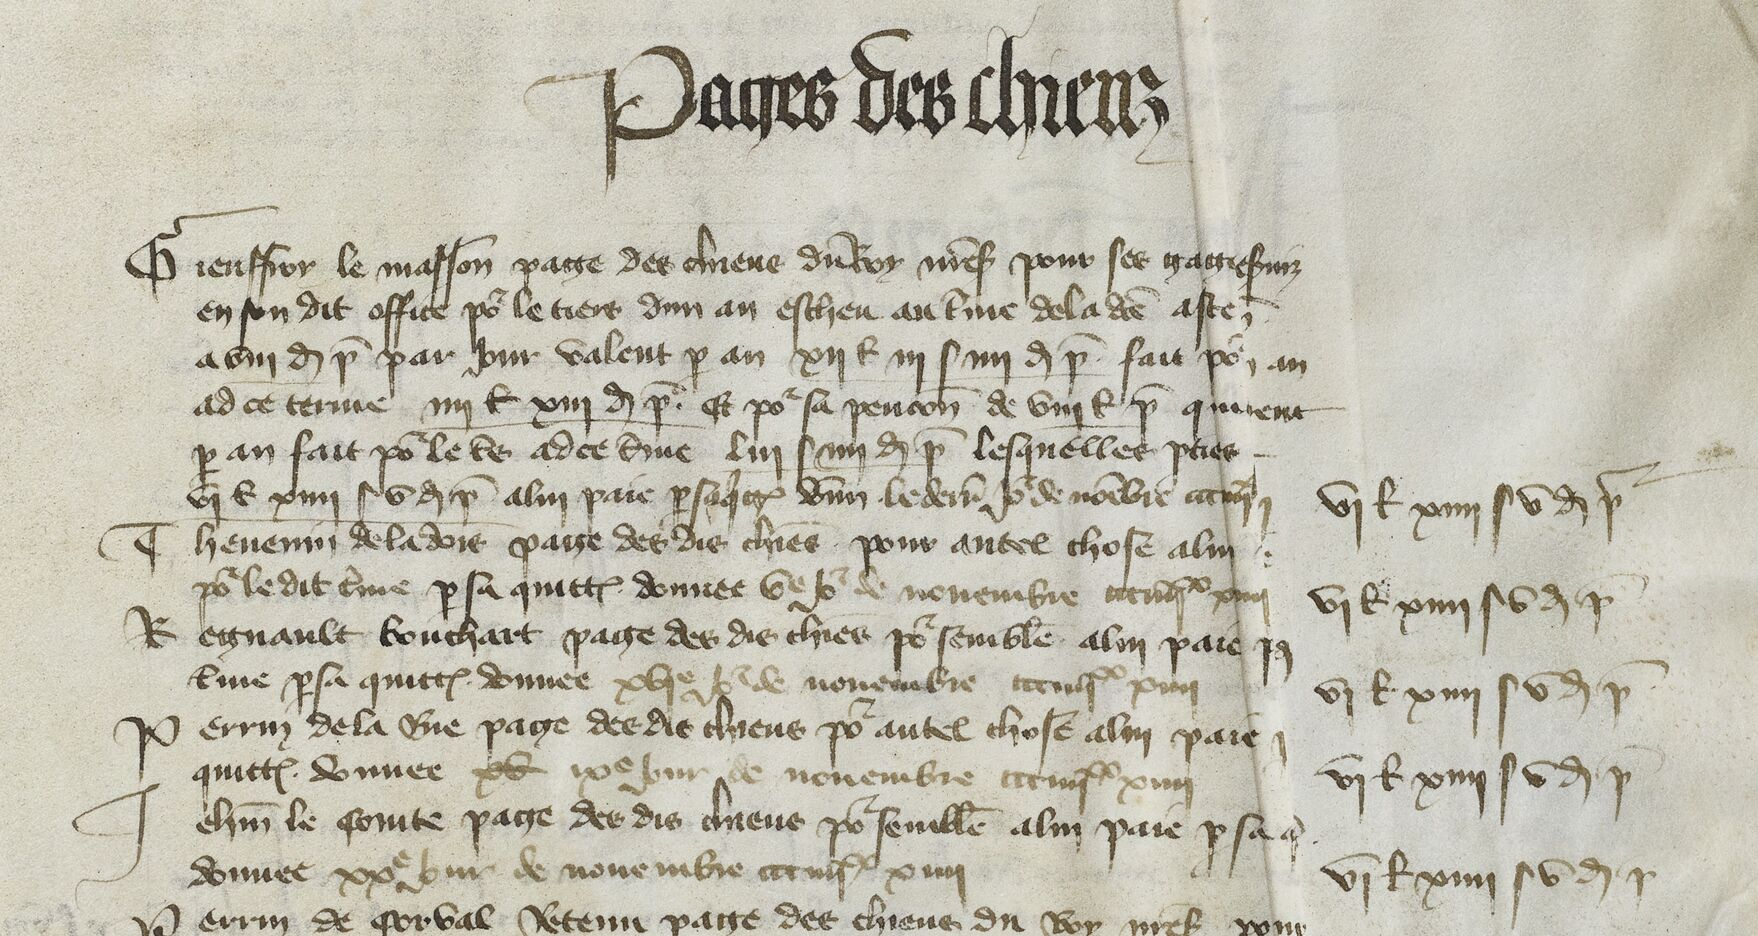 Charles VI had 10 salaried pages for his hunting dogs